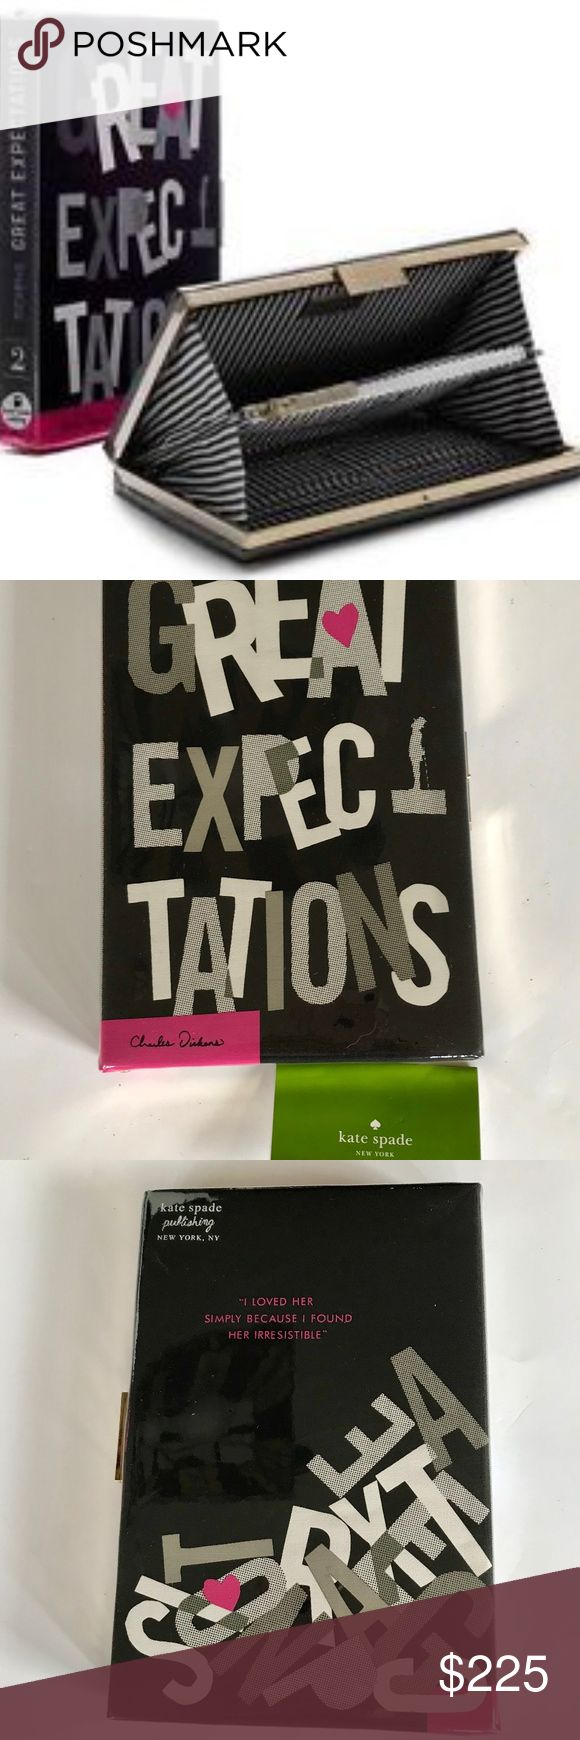 """Kate Spade Great Expectations Clutch Purse Book Kate Spade Book of the Month Club  Great Expectations Clutch Purse  With Green Kate Spade Card Measurements:  6"""" x  9"""" x 1.5"""".  Black & White striped interior. 2 sides with a divider. One side has credit card pockets - 4 on each side. Middle divider is a zippered pocket. Green Kate Spade card is still in the middle pocket. No box or dust bag Interior is pristine , Tiny white scuff on the front - about .8"""" of a inch Gold metal band around…"""